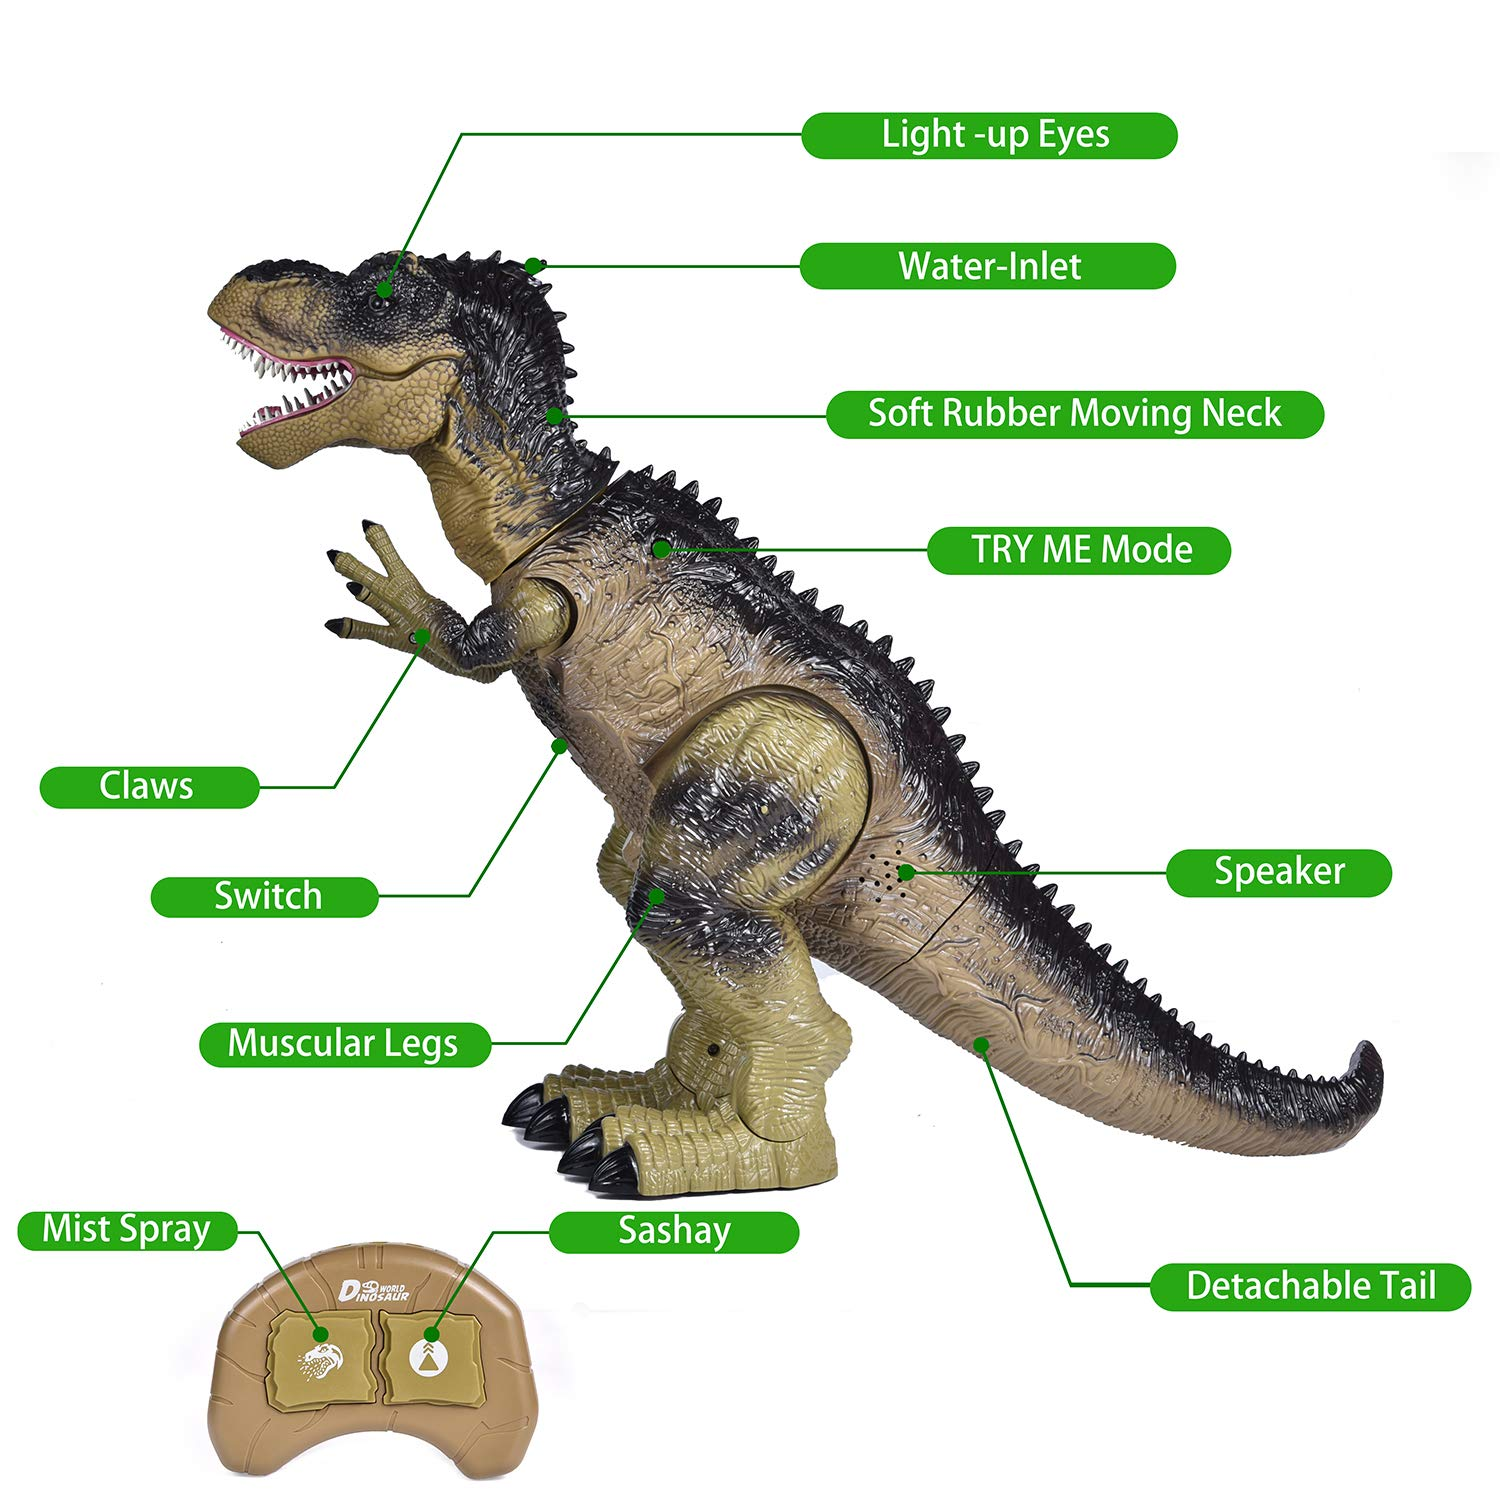 Remote Control Dinosaur for Kids, Electronic Walking & Spray Mist Large Dinosaur Toys with Glowing Eyes, Roaring Dinosaur Sound,18.5'' Realistic T-Rex Toy for Boys by FUN LITTLE TOYS (Image #5)